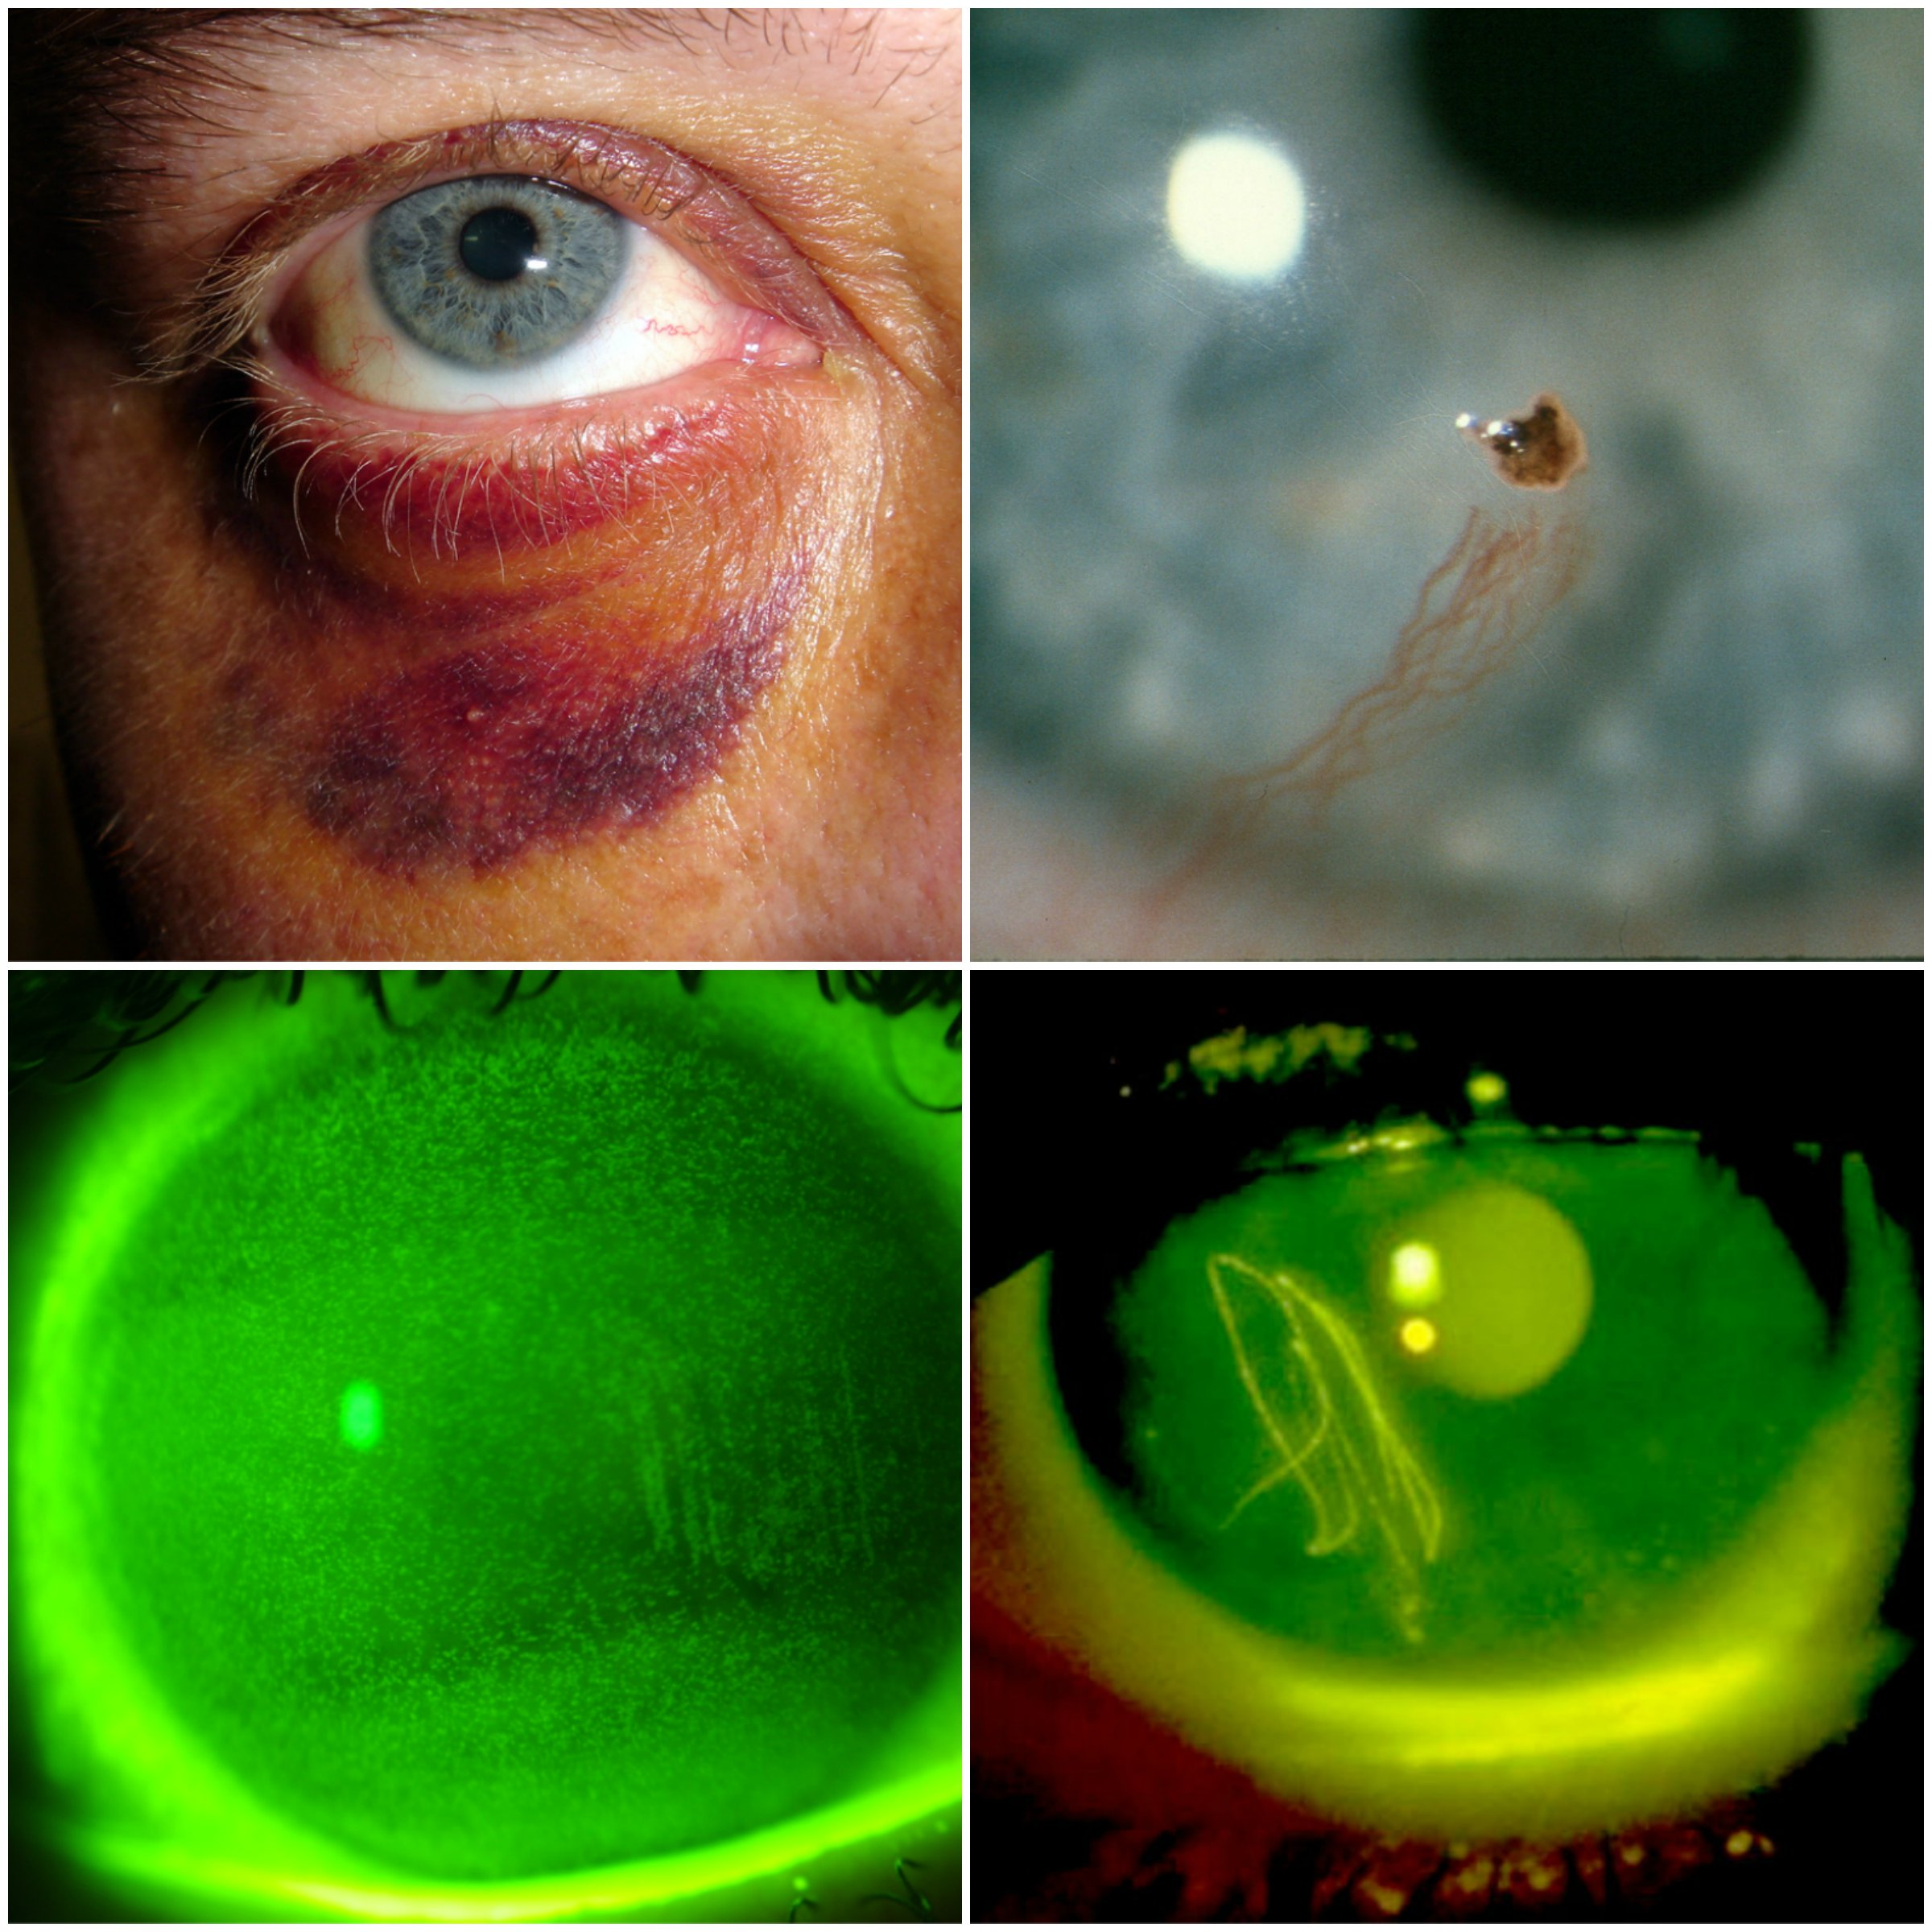 Eye injuries are no fun at all. Top left: Black eye;Top right: Metallic object in eye;Bottom left: Chemical burn;Bottom right: Scratched eye